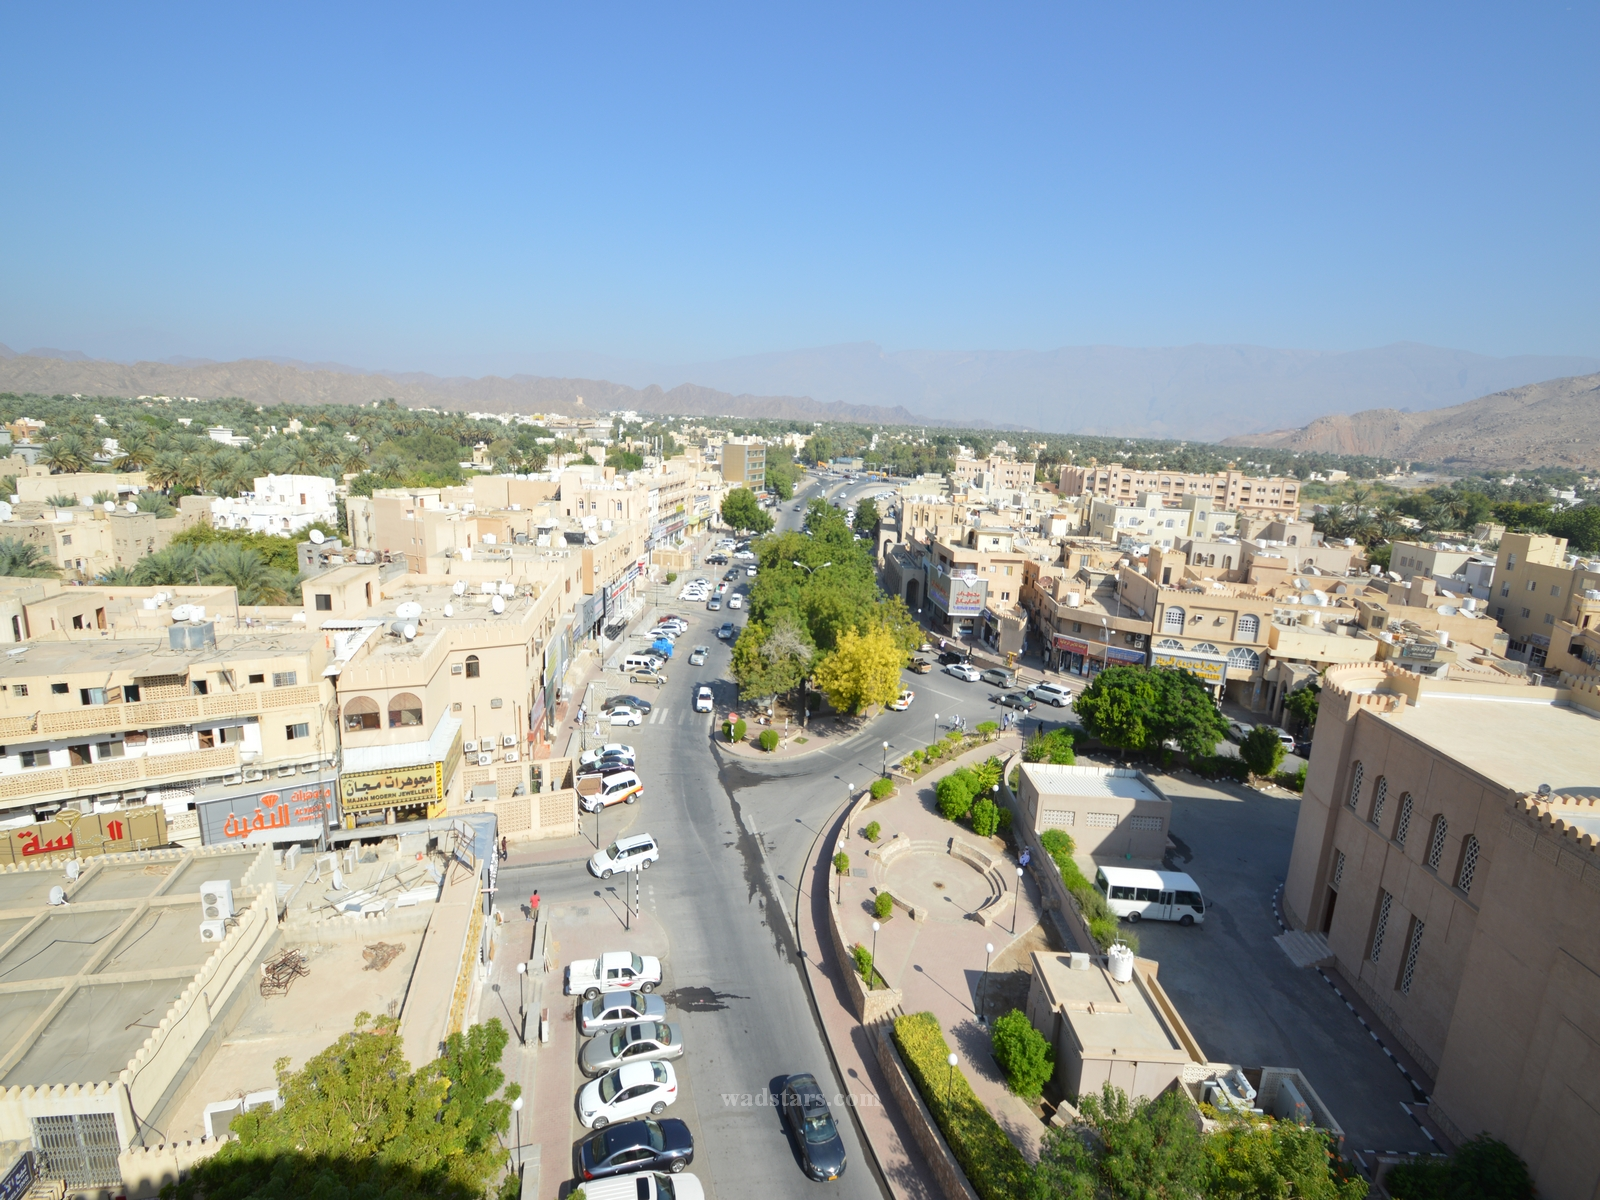 Nizwa Ad Dakhiliyah ‍Governorate Oman Hotels and Tour with good price by wadstars 29